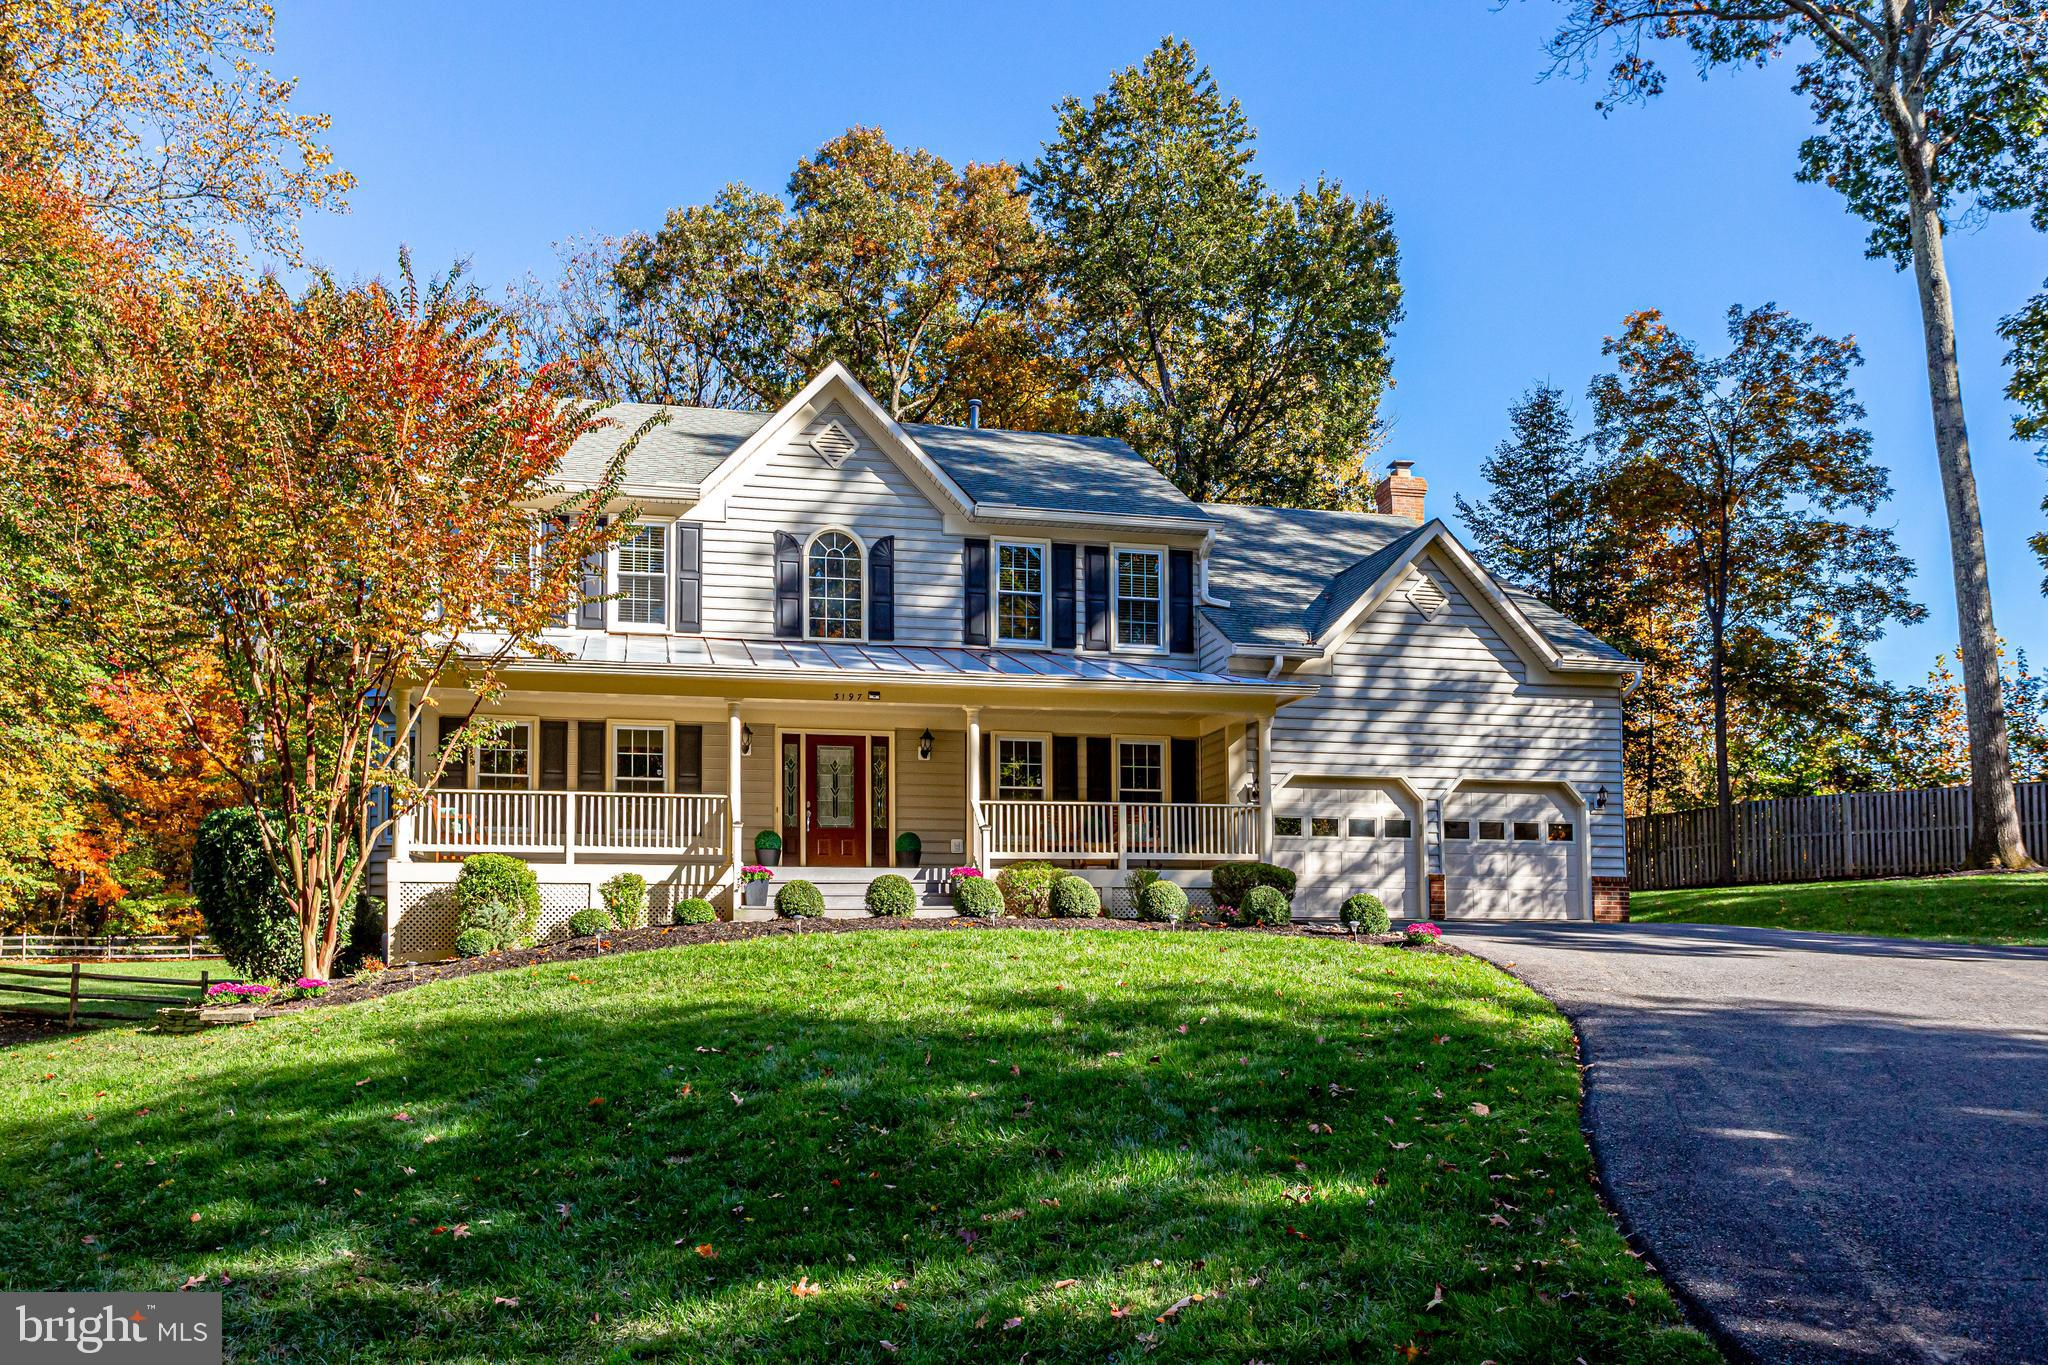 3197 UPPER WYNNEWOOD PLACE, OAK HILL, VA 20171